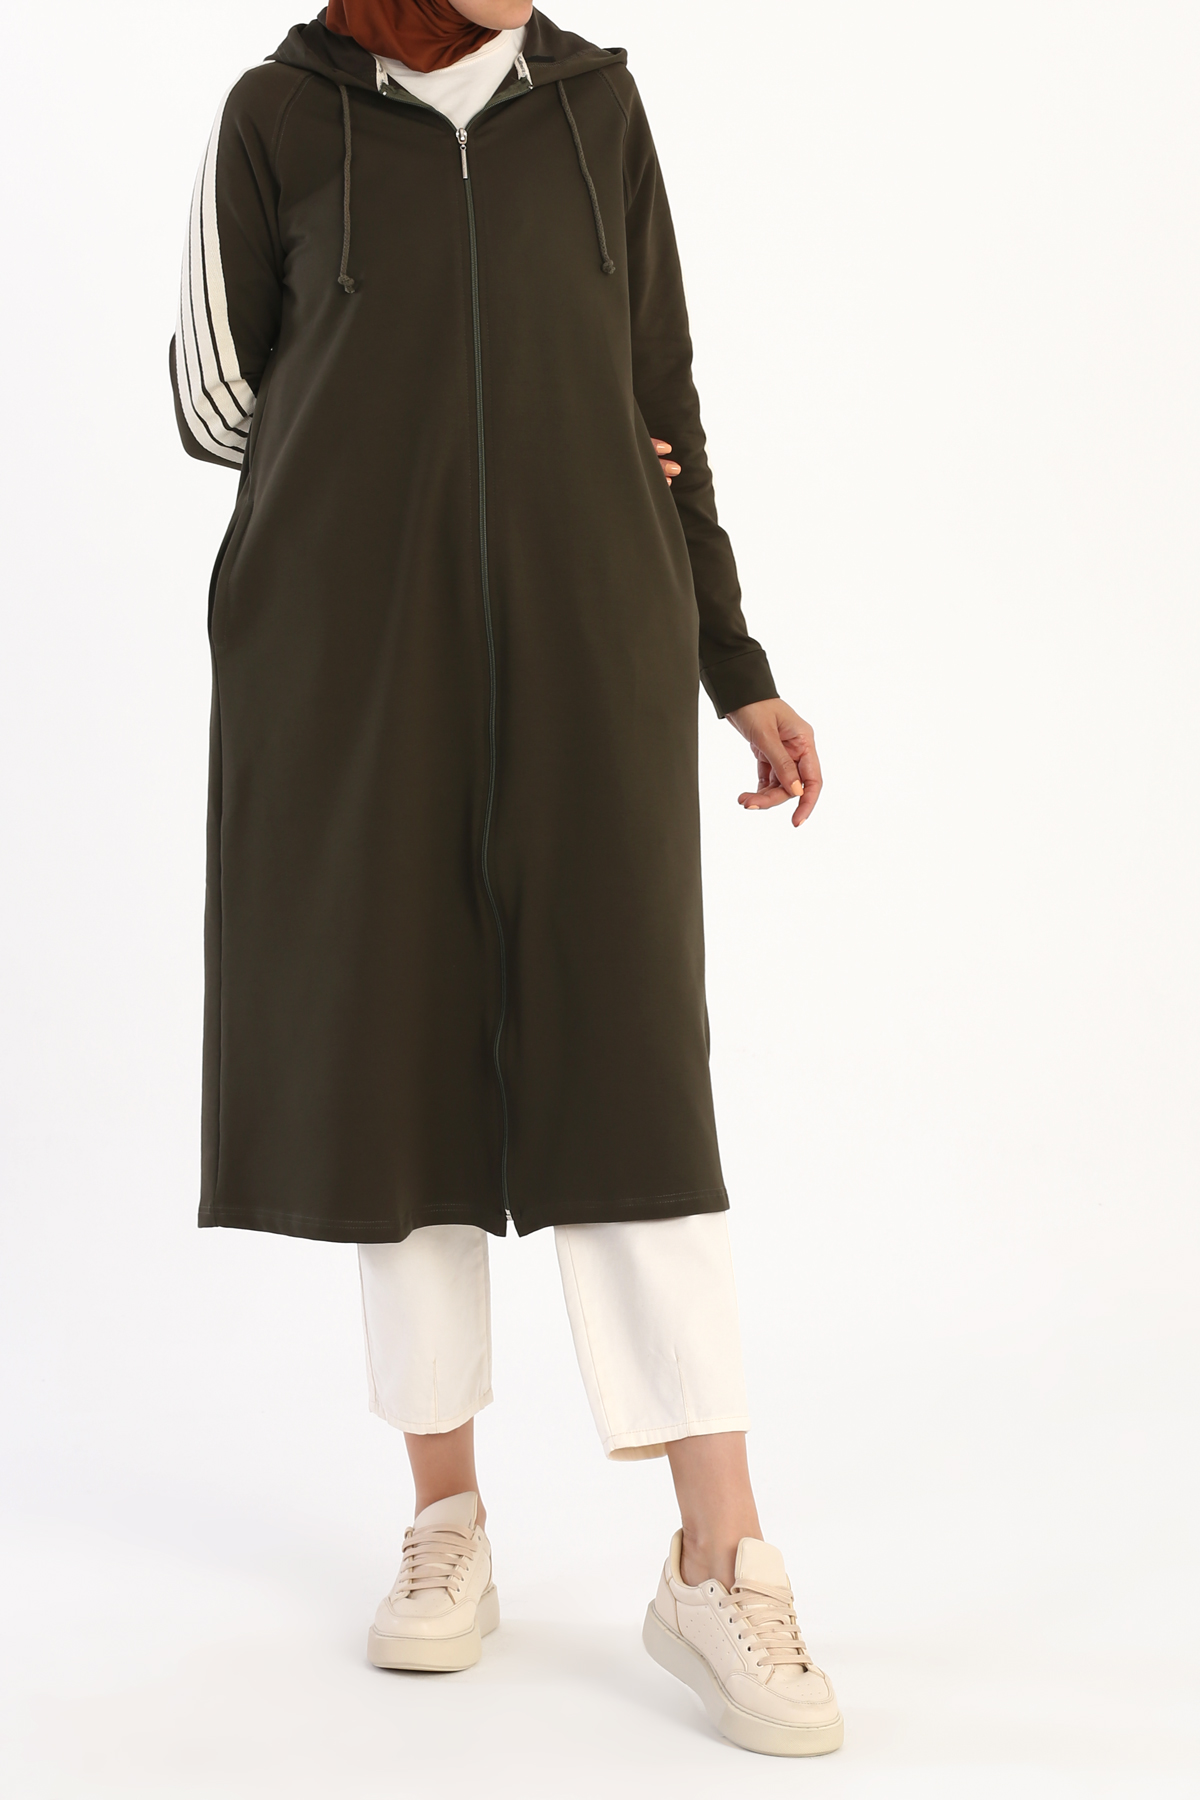 Sleeve Detailed Zipper Front Hooded Long Cardigan